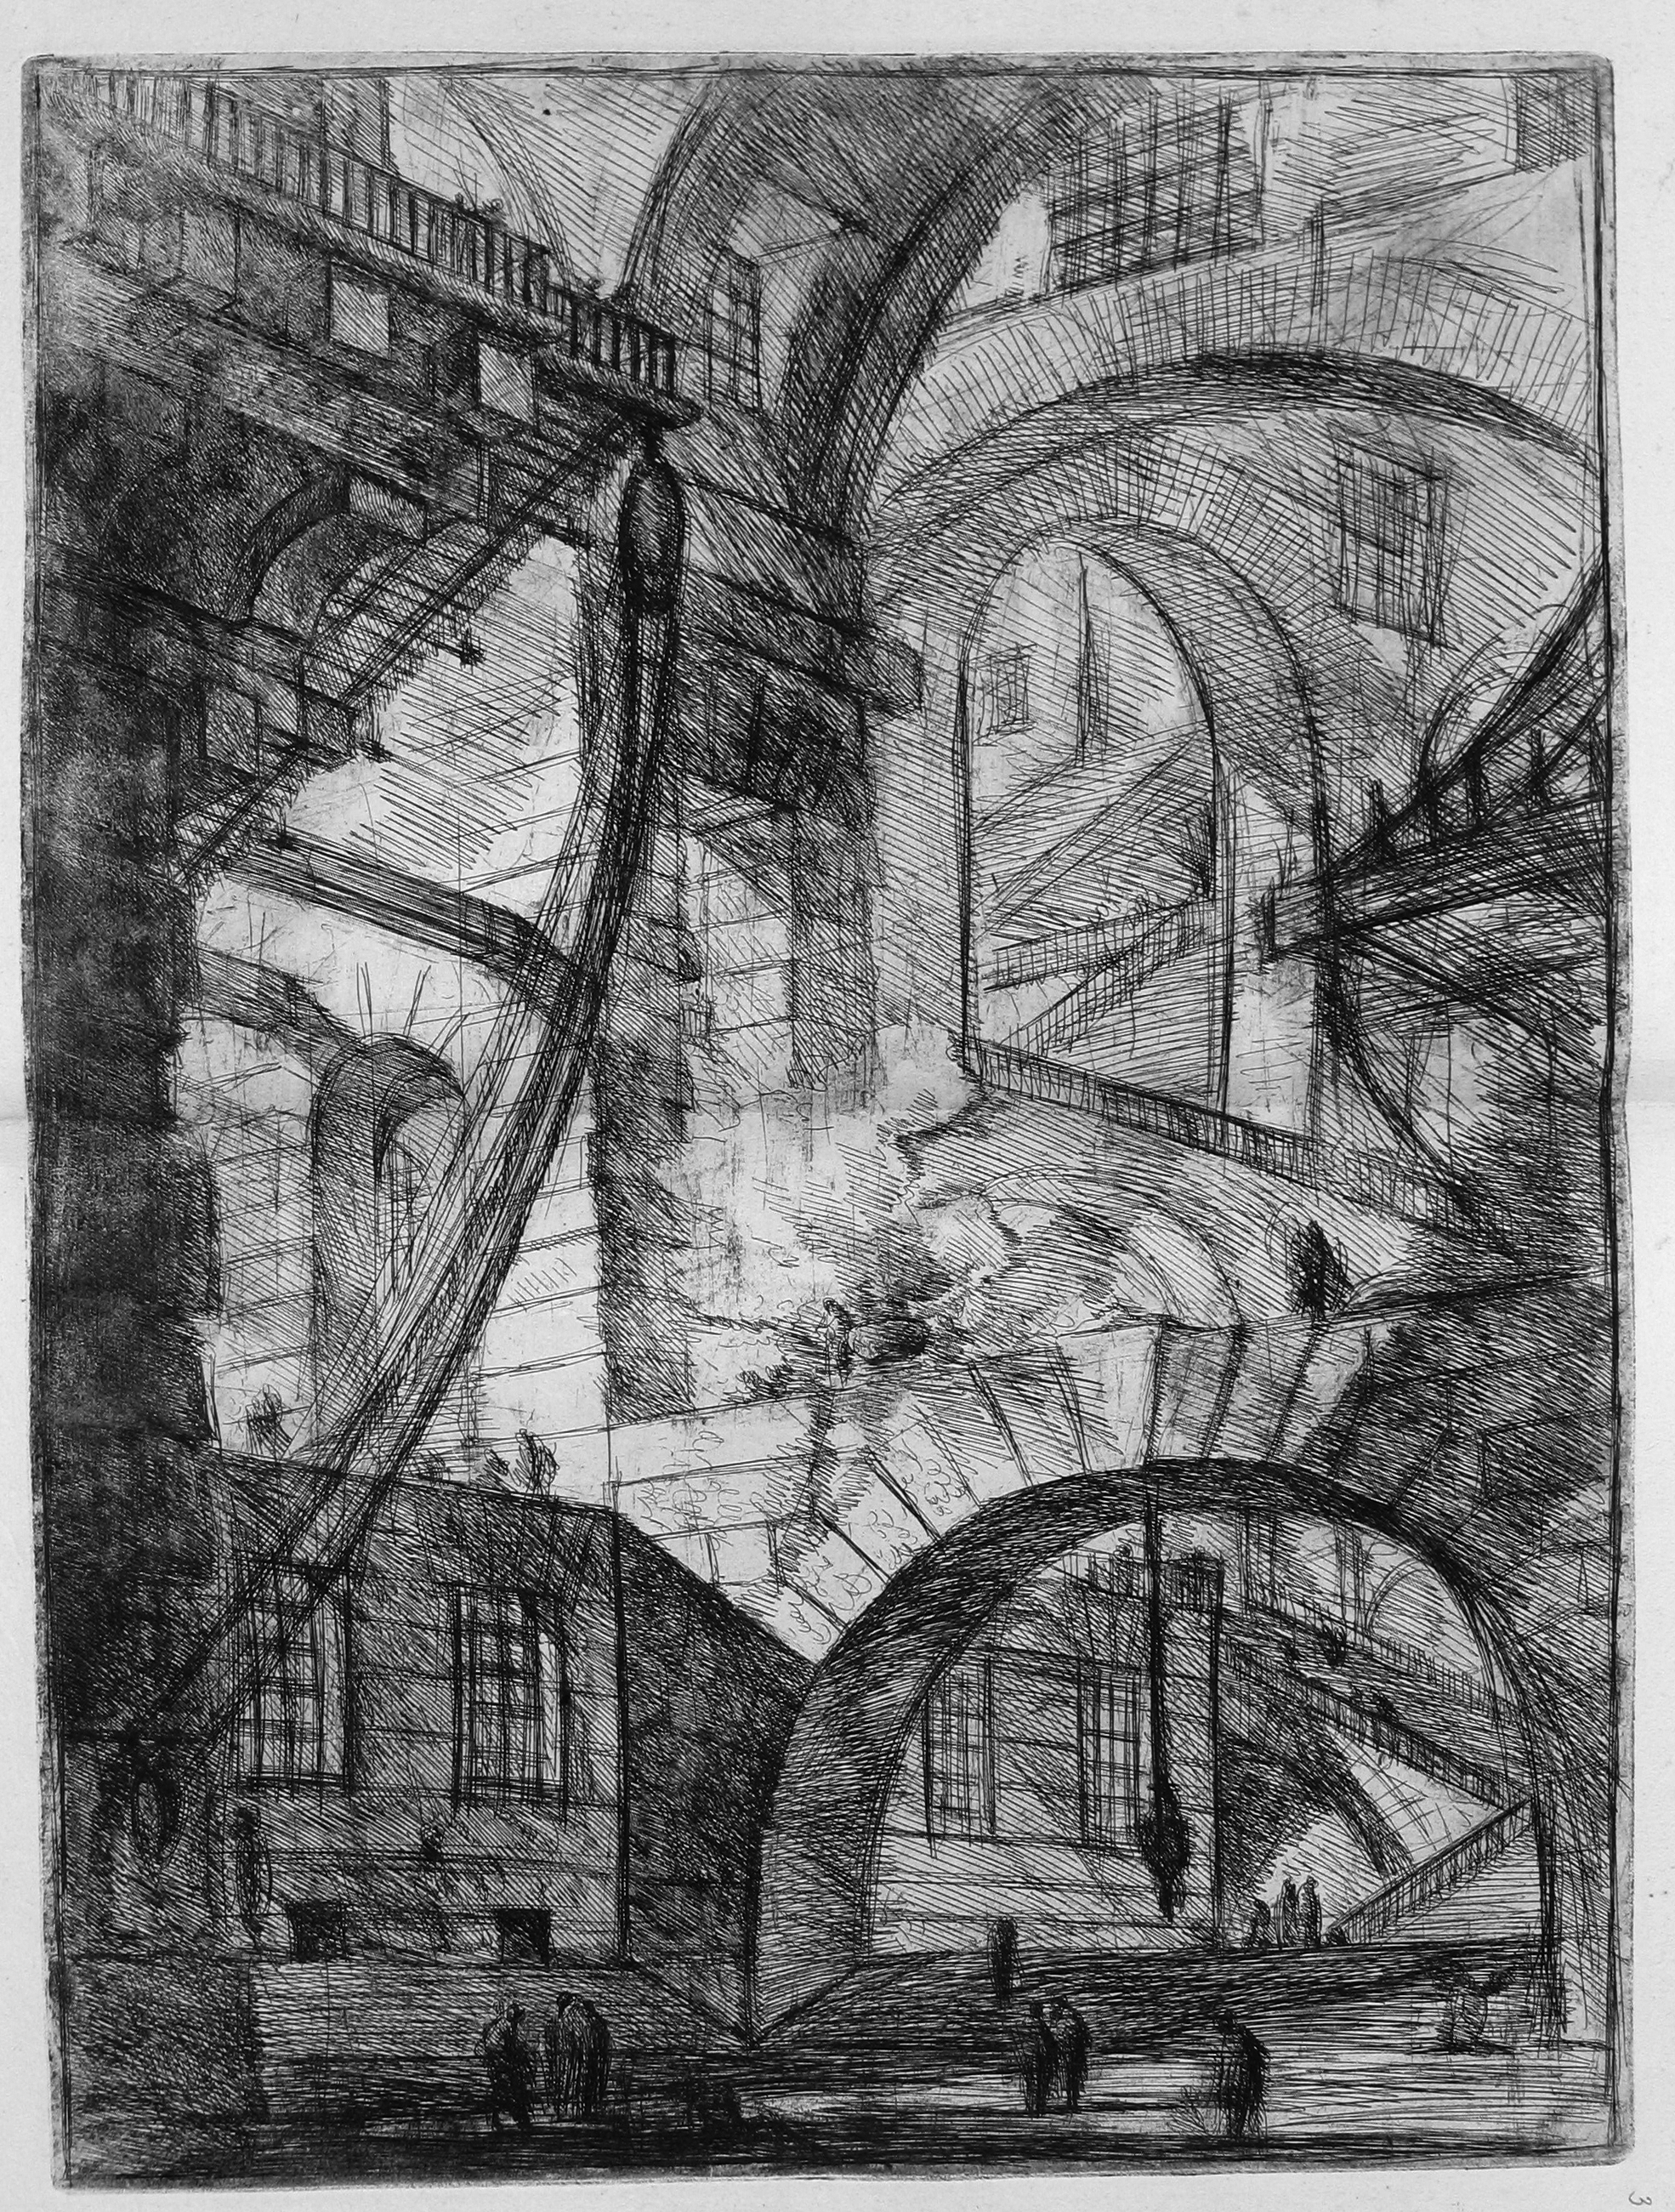 Файл:Giovanni Battista Piranesi - Le Carceri d'Invenzione - First Edition -  1750